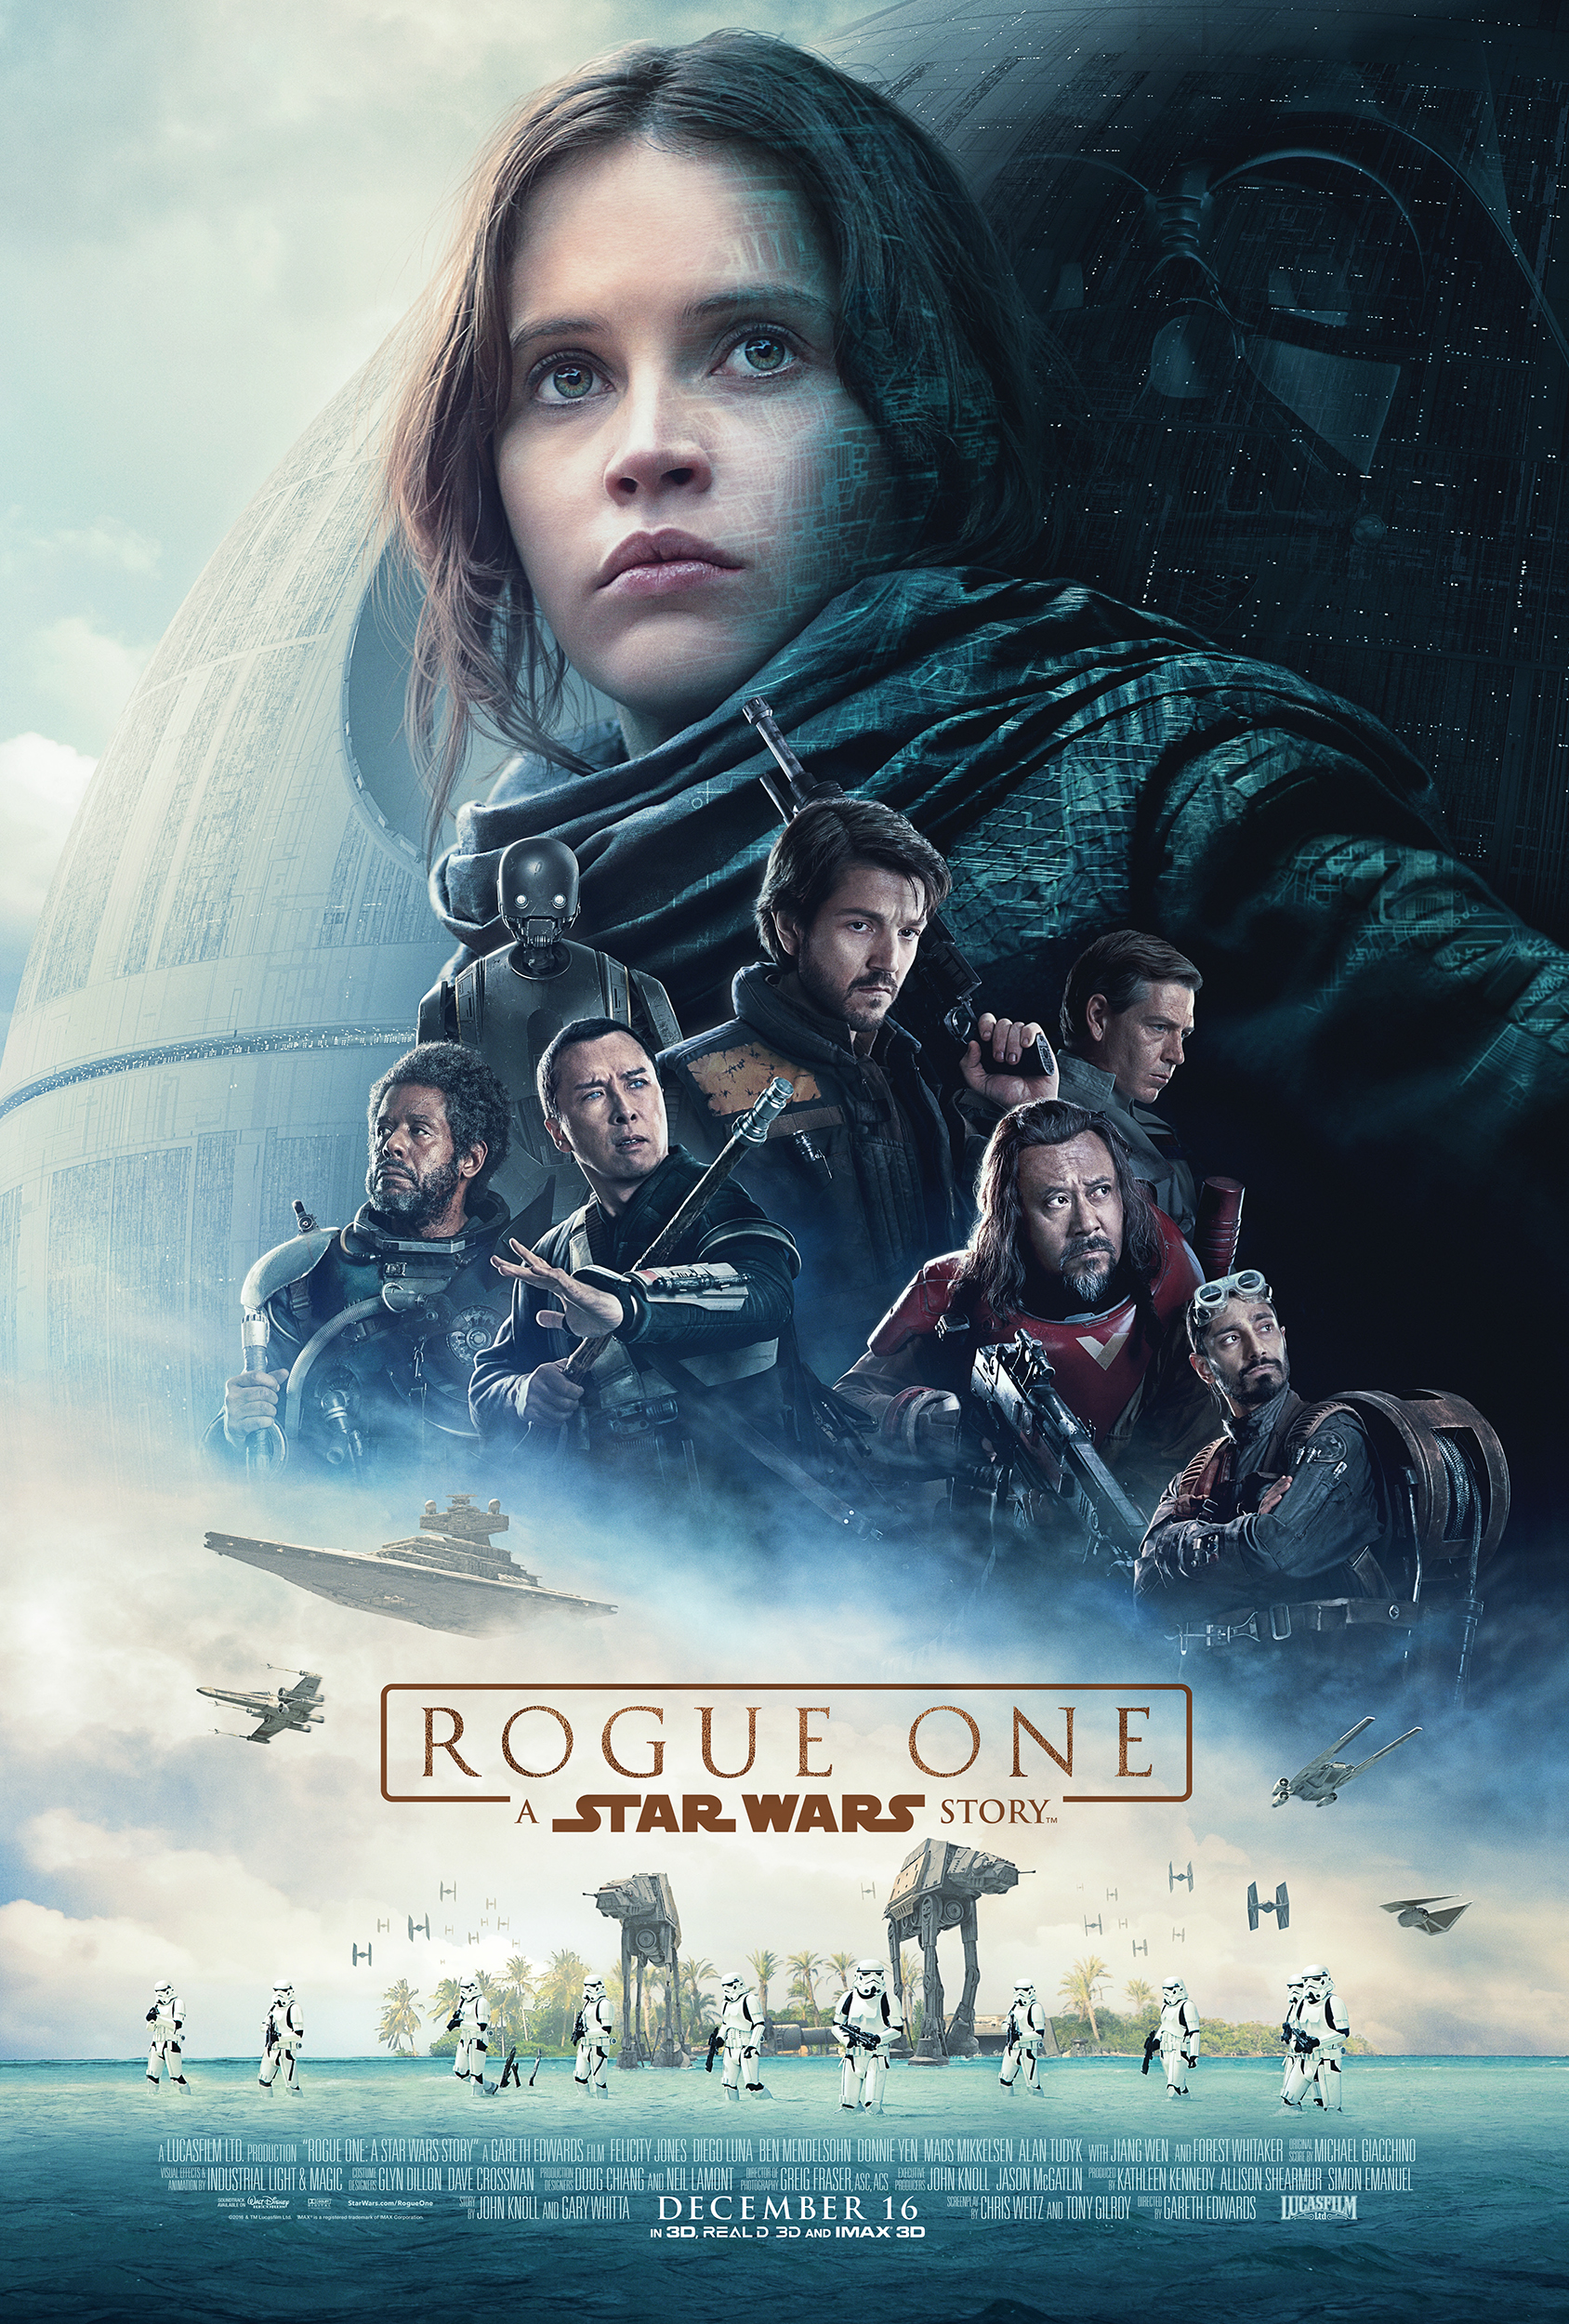 Star Wars Poster Rogue One A Star Wars Story Poster Revealed And Trailer